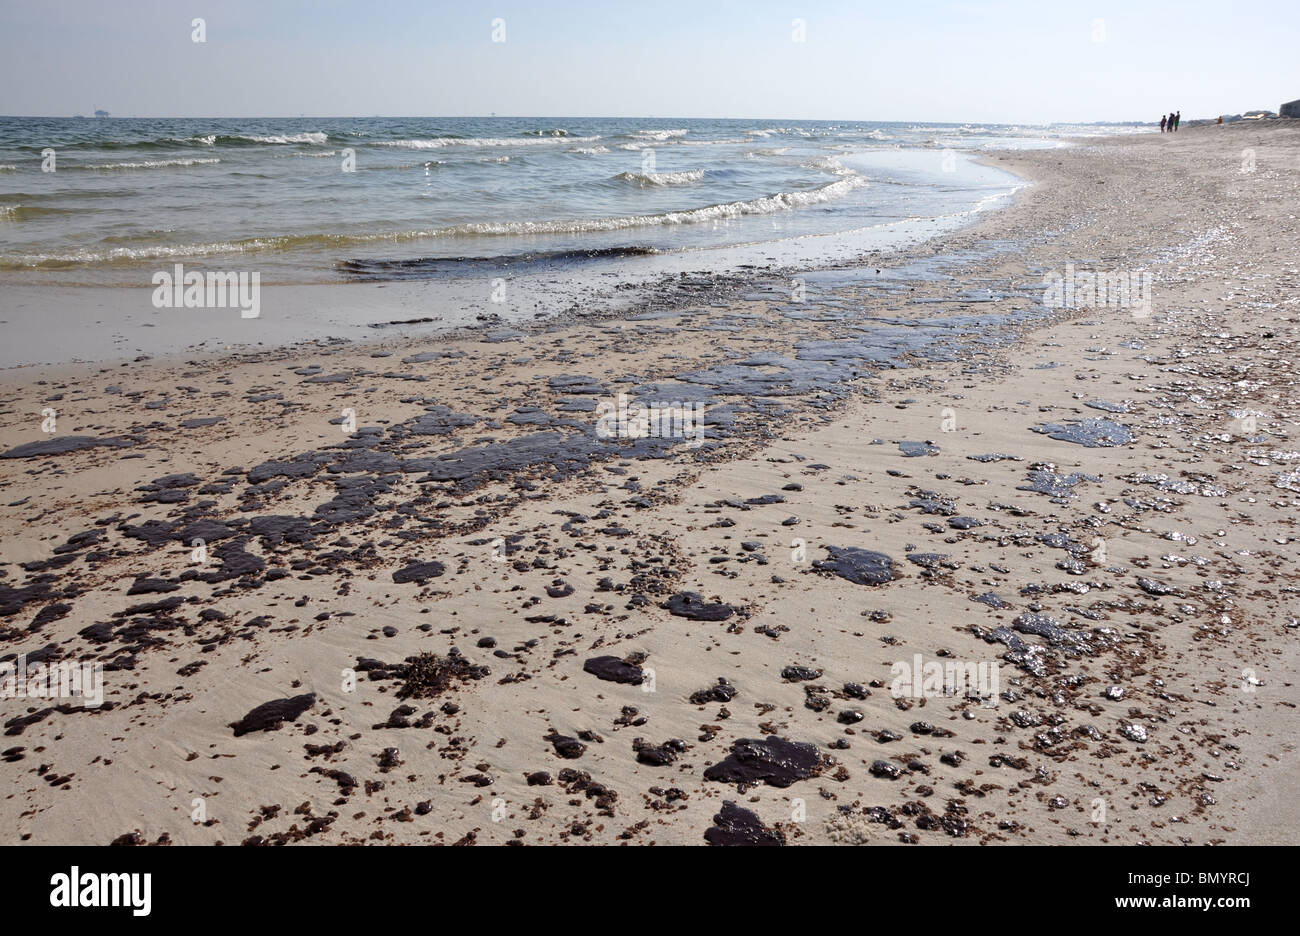 Oil spill on beach with off shore oil rig in background. - Stock Image